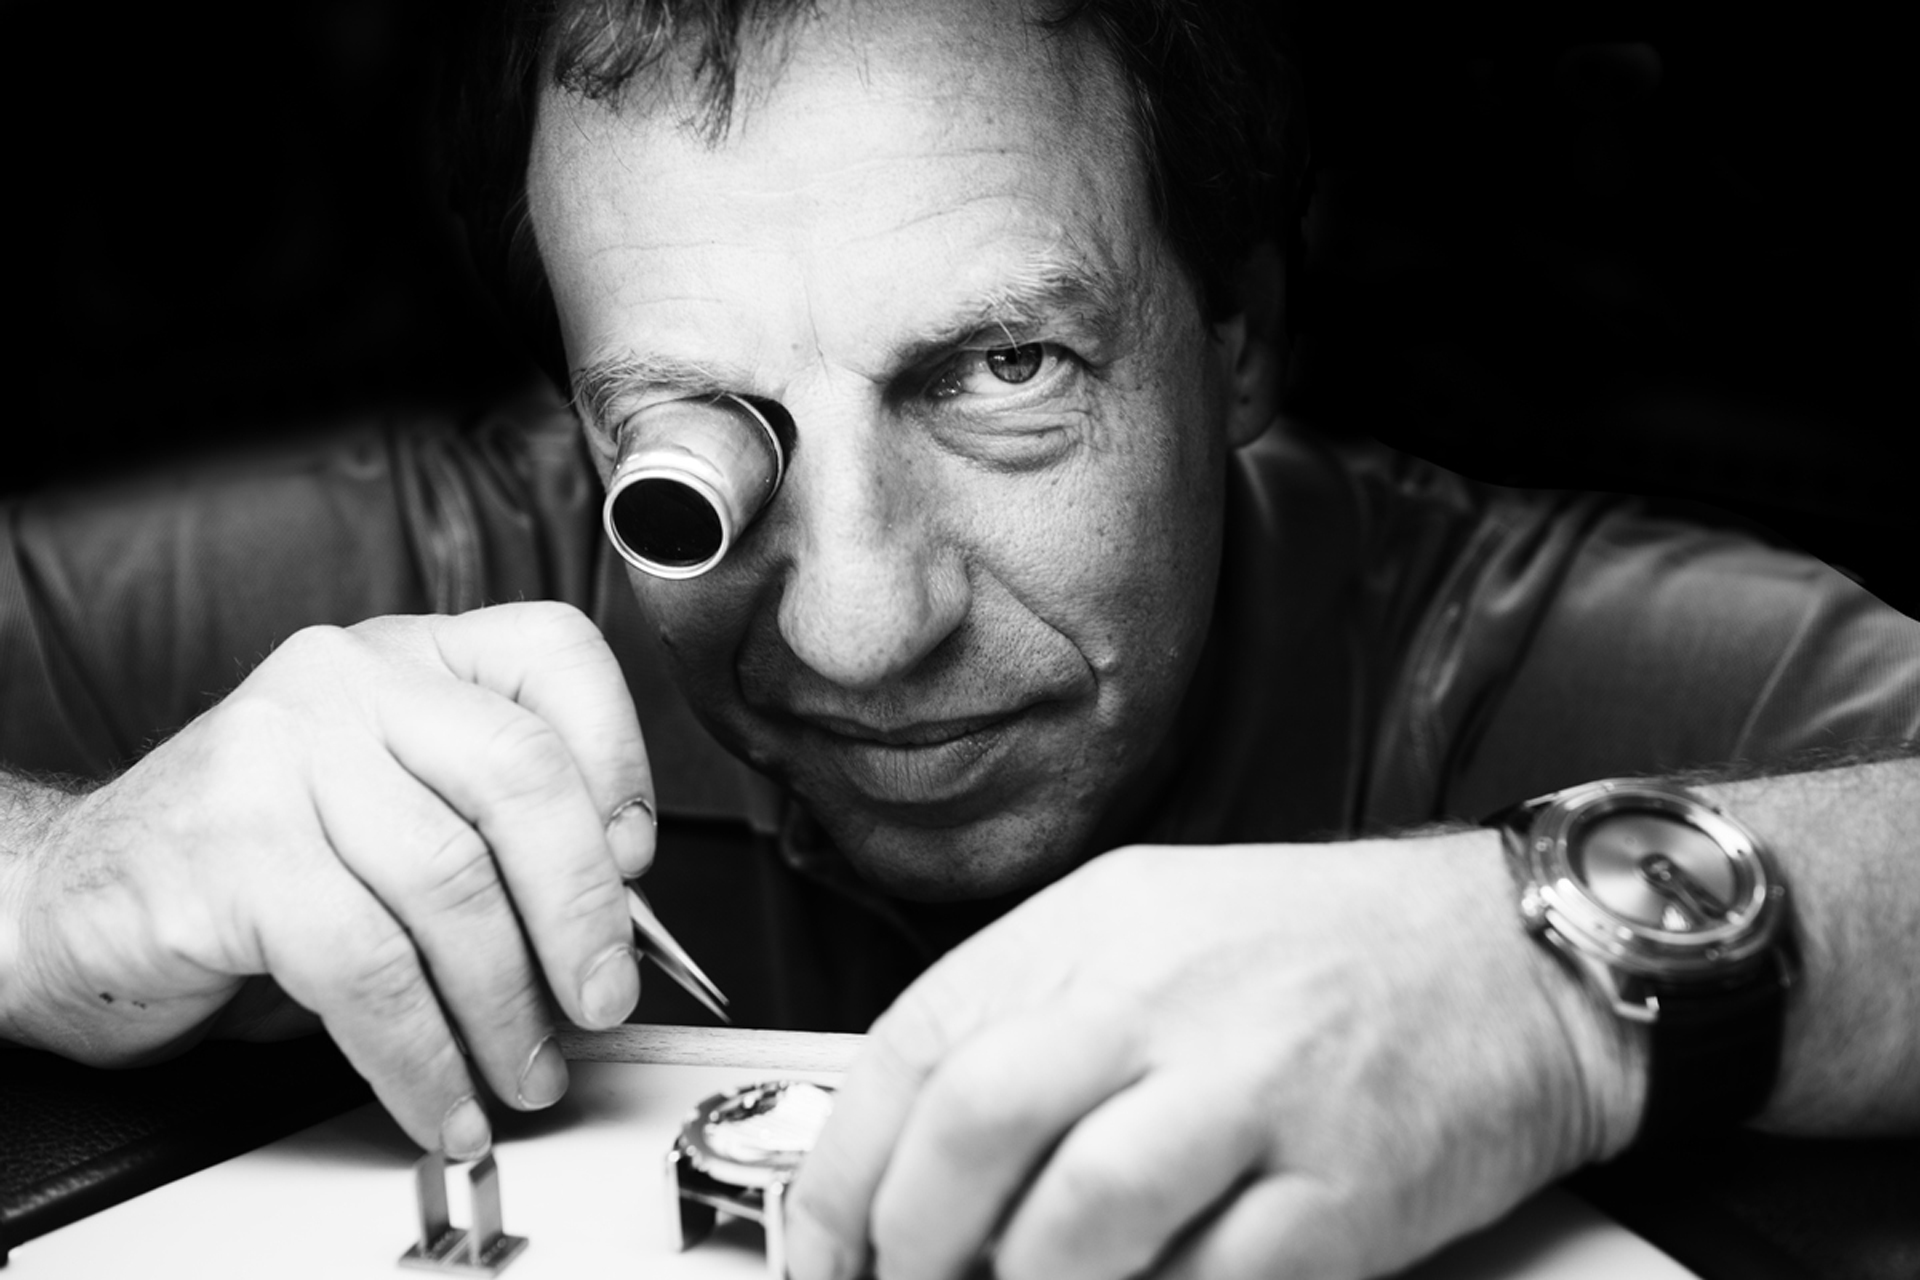 Master Watchmaker and Co-Founder of De Bethune, Denis Flageollet